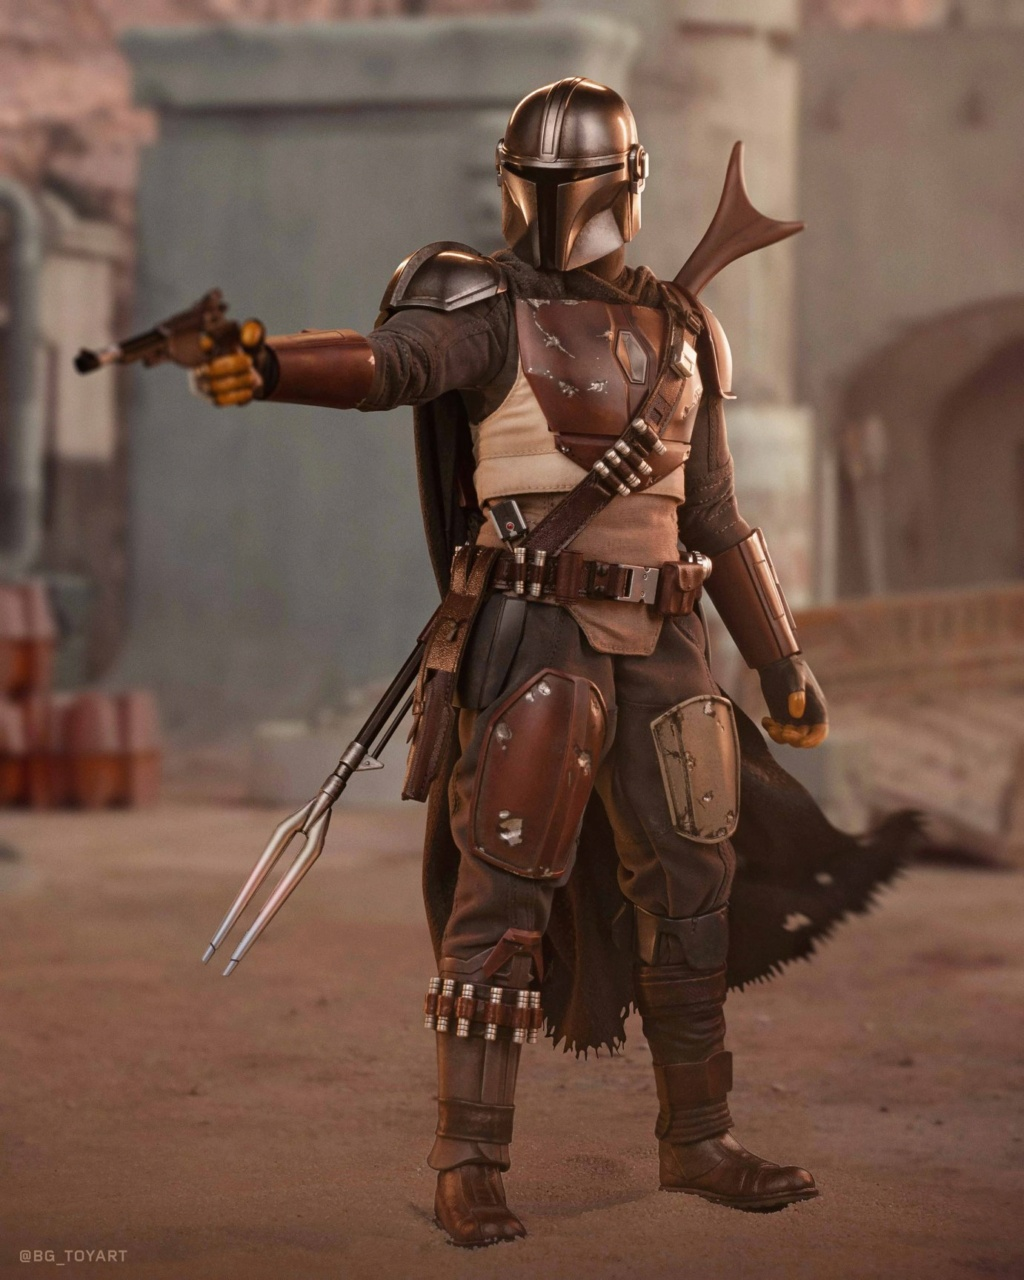 StarWars - NEW PRODUCT: HOT TOYS: THE MANDALORIAN -- THE MANDALORIAN 1/6TH SCALE COLLECTIBLE FIGURE 12257